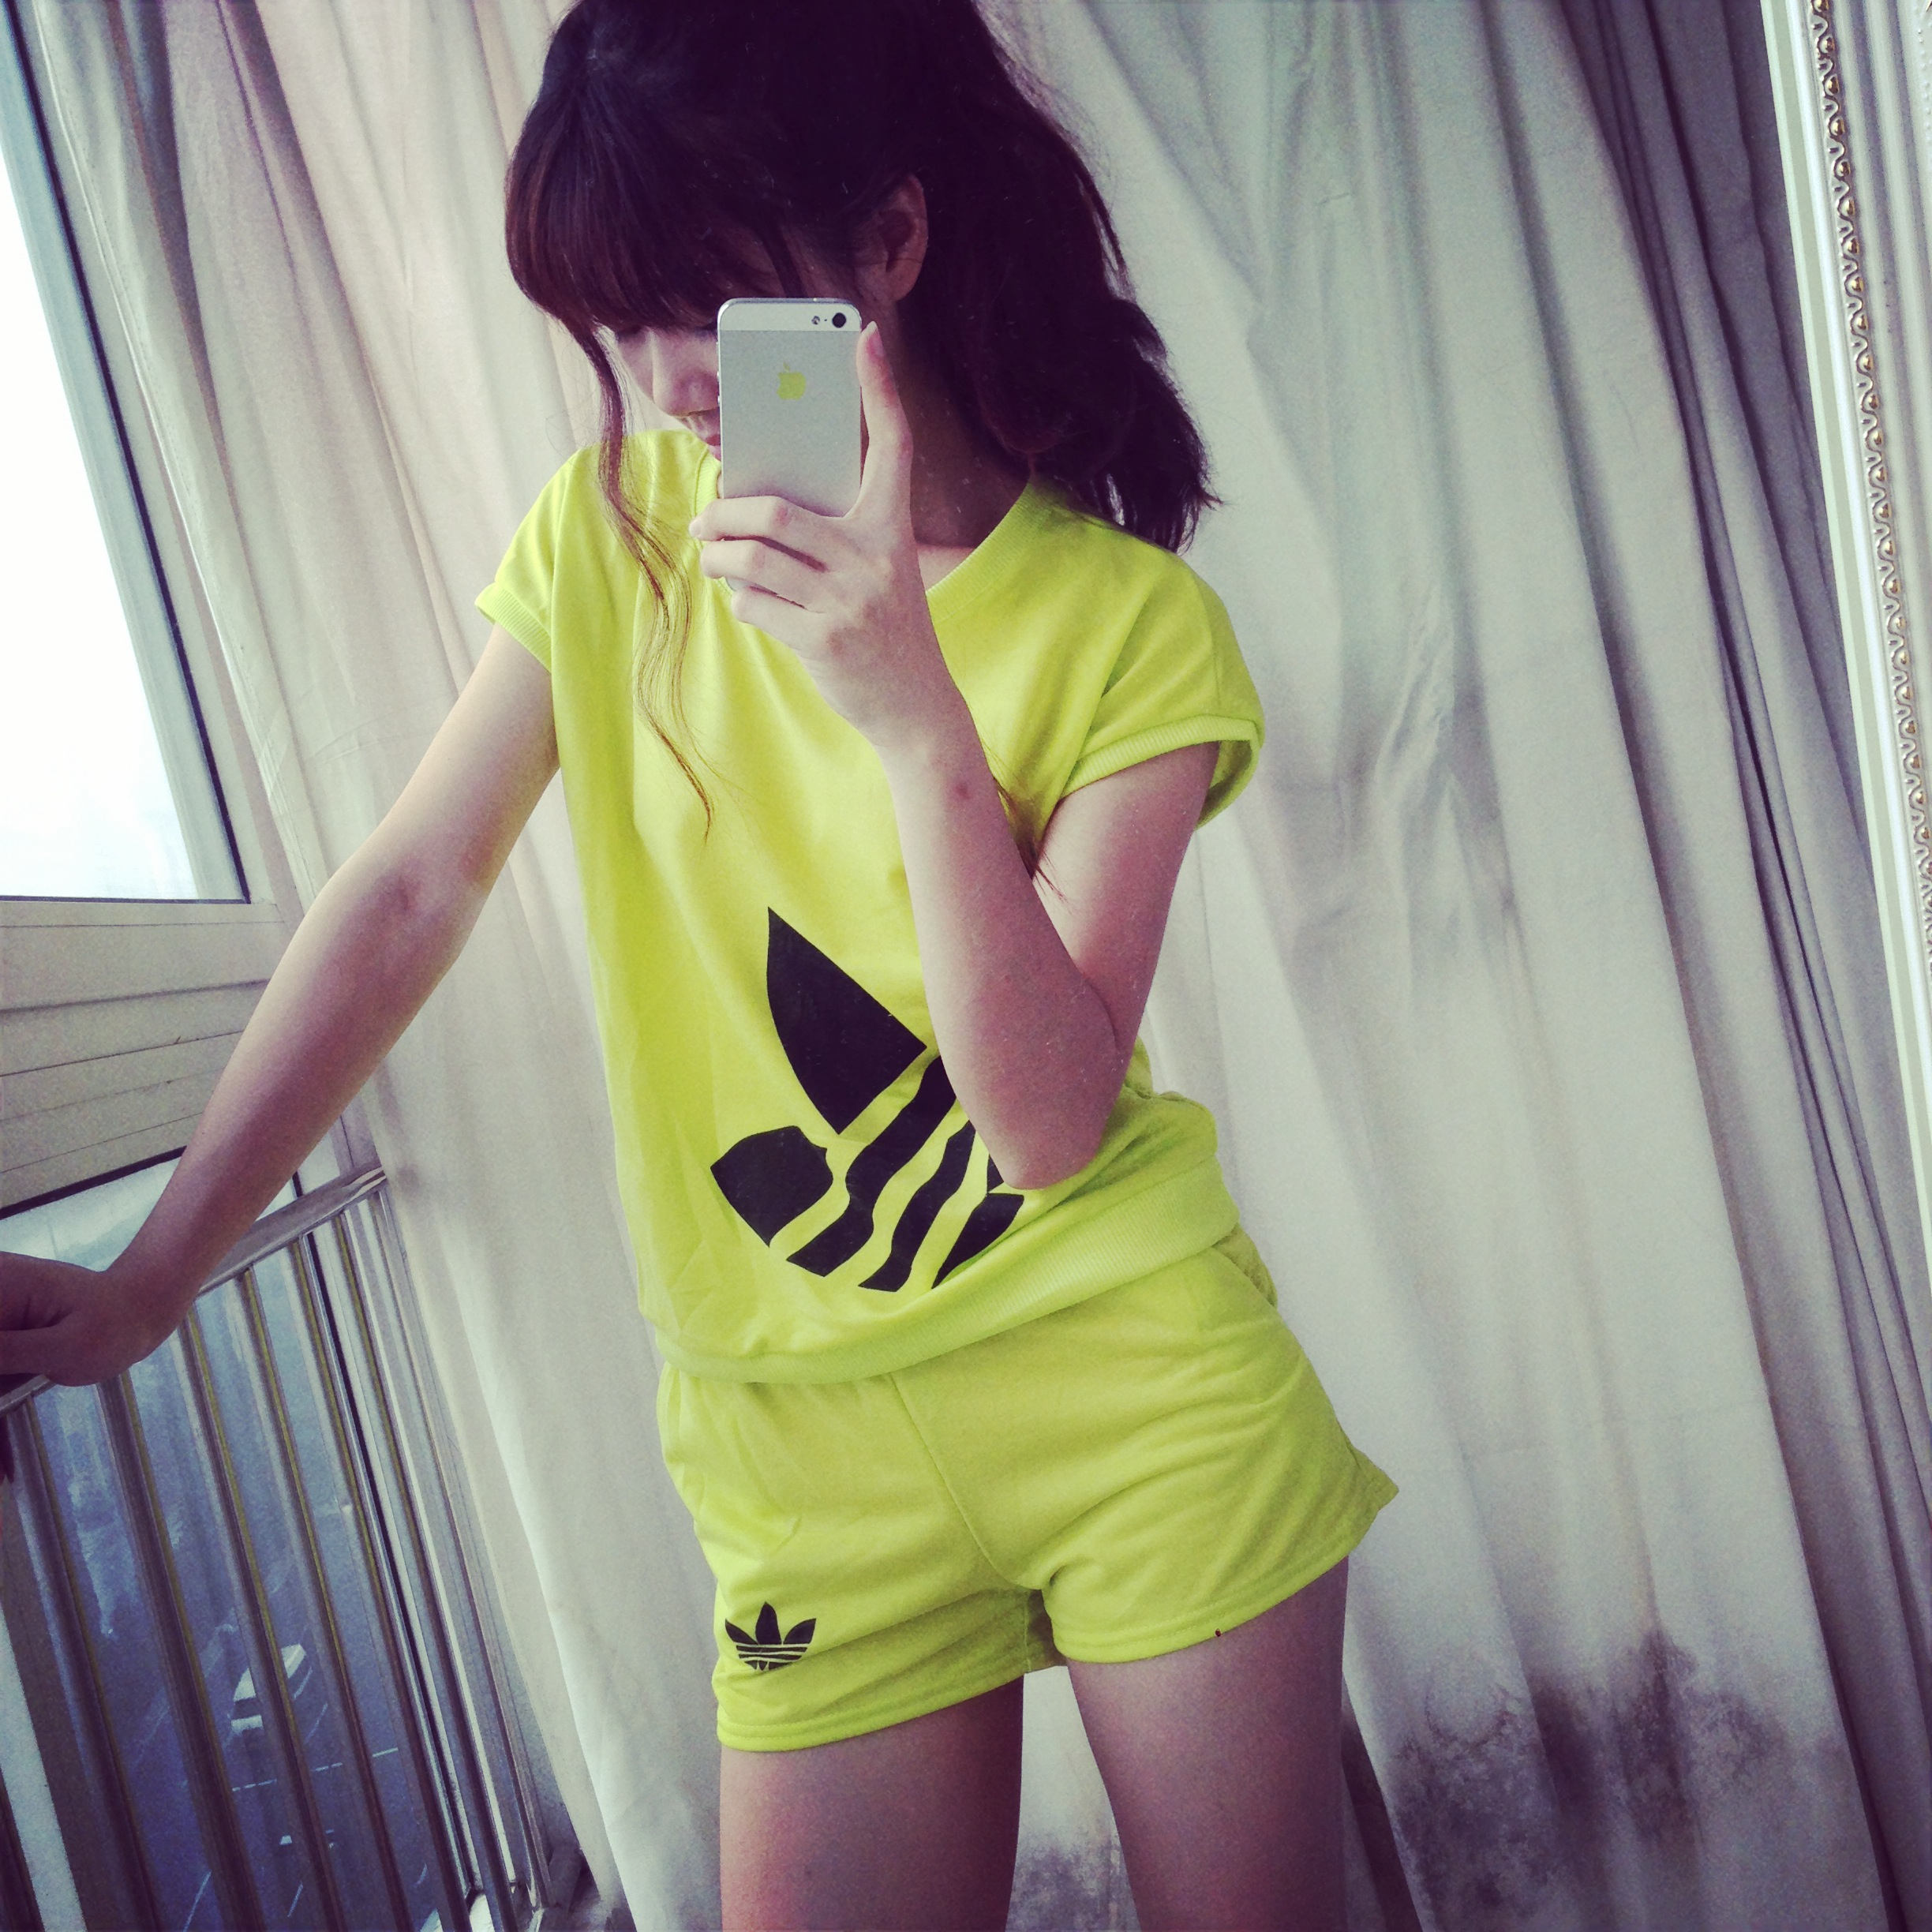 2014 summer women's short sleeve T shirt female print t shirt shorts twinset casual sports set-inHoodies & Sweatshirts from Apparel & Accessories on Aliexpress.com